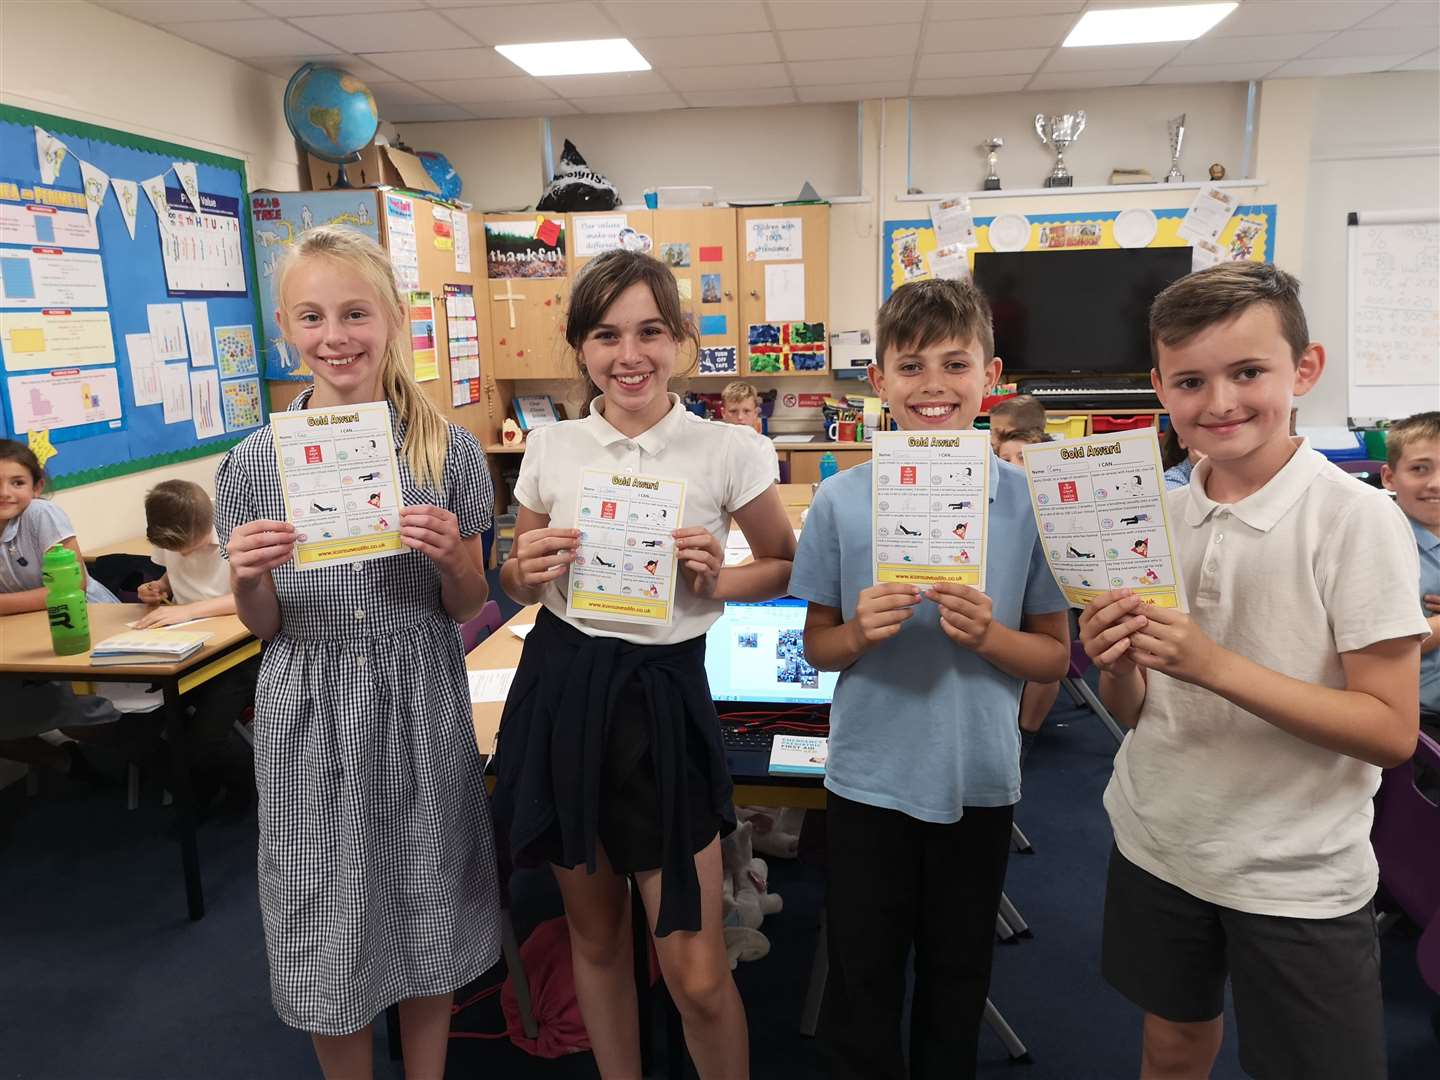 Pupils from Owls class with their Gold Awards